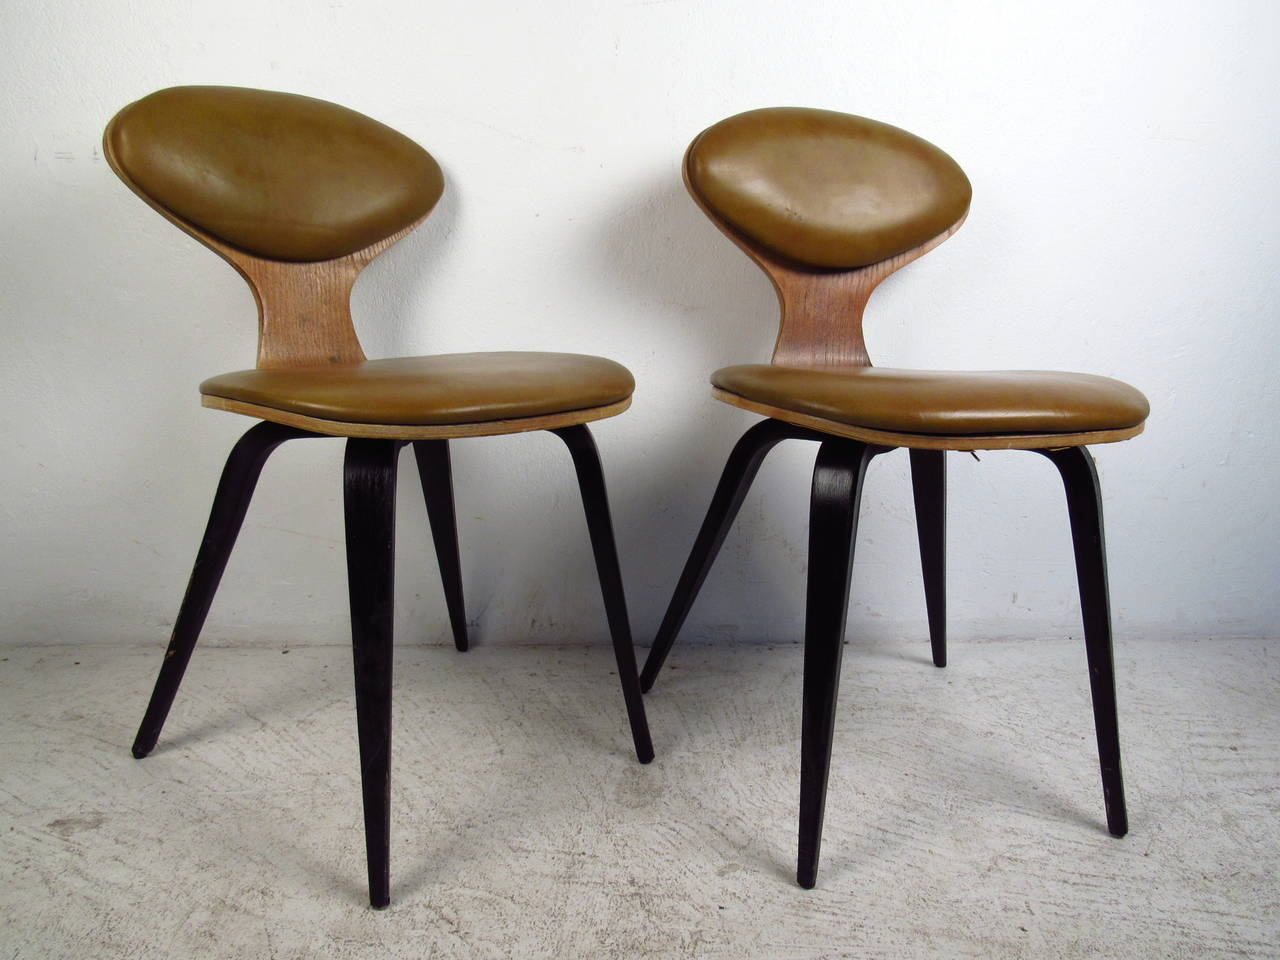 This pair of mid century chairs in the style of Norman Cherner feature a bentwood design, original vinyl upholstered seat backs, and black painted tapered legs which offer a modern accent to any home or office space.